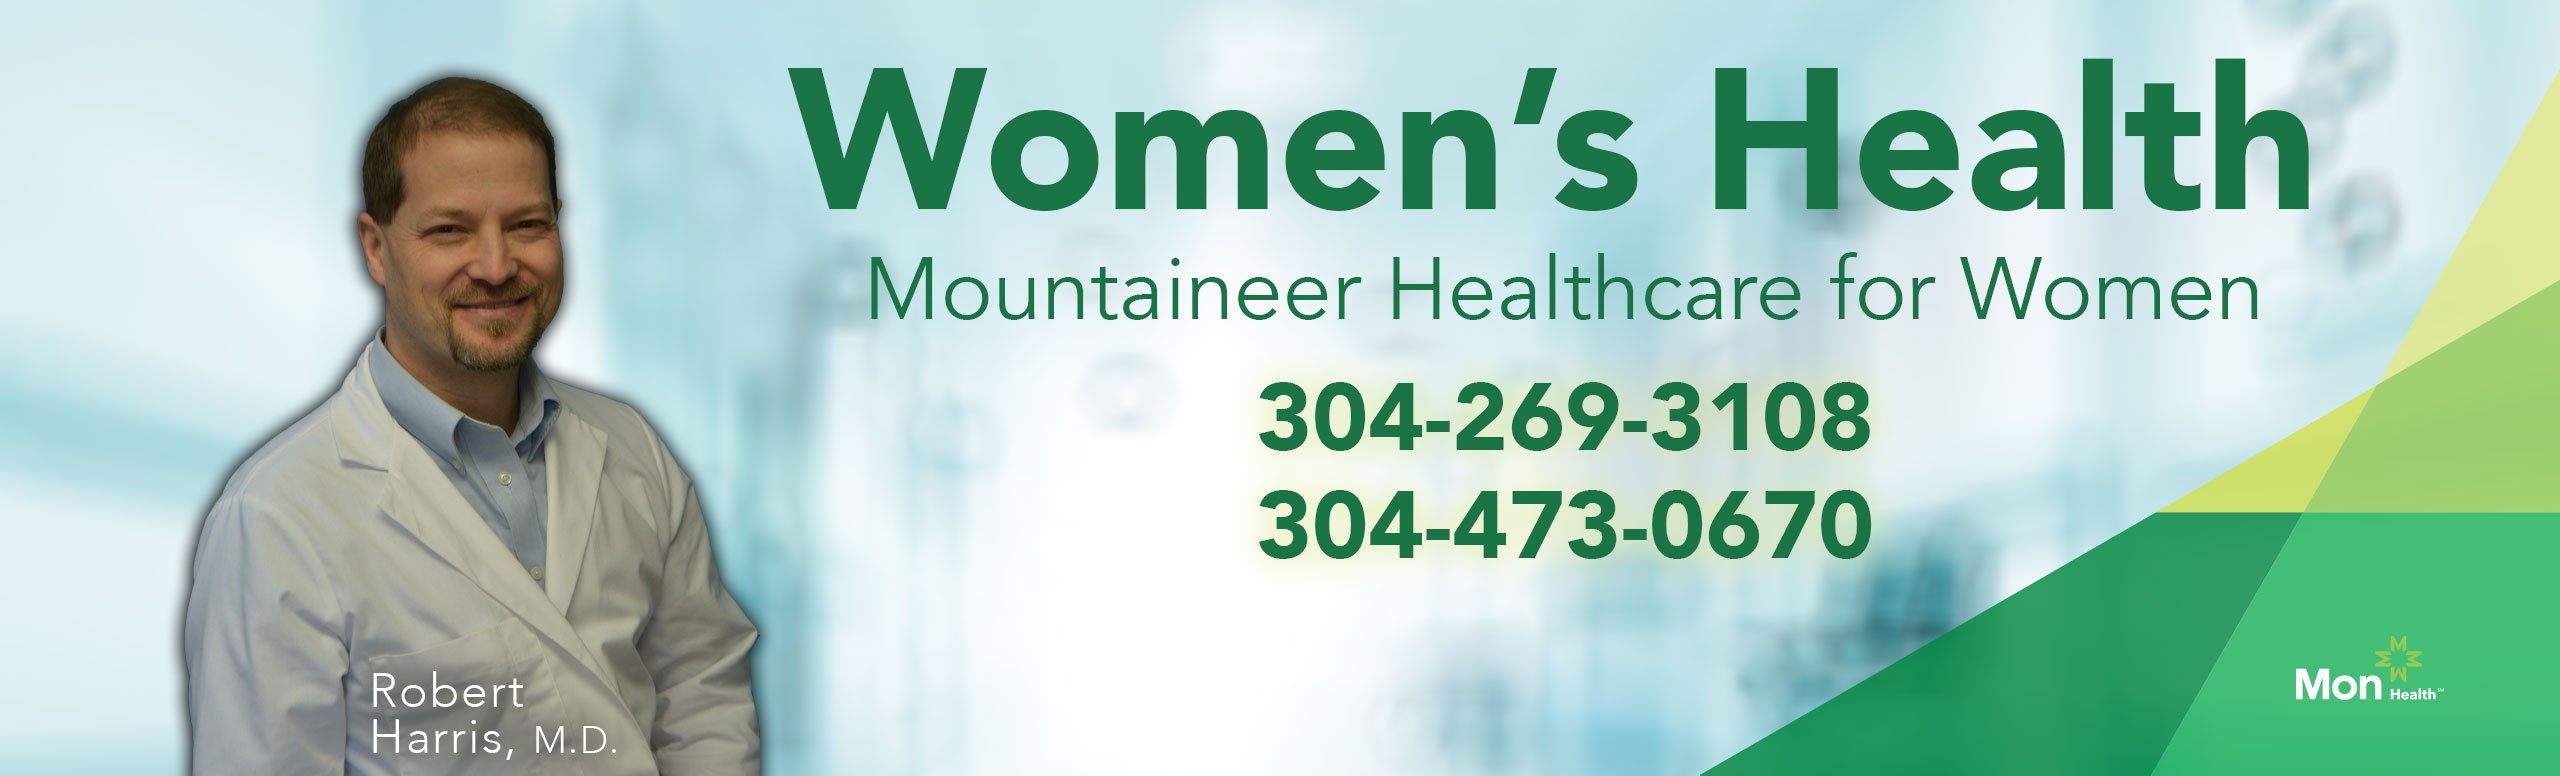 Women's Health Mountaineer Healthcare for Women: contact numbers are listed for Robert Harris, 304-269-3108 and 304-473-0670.